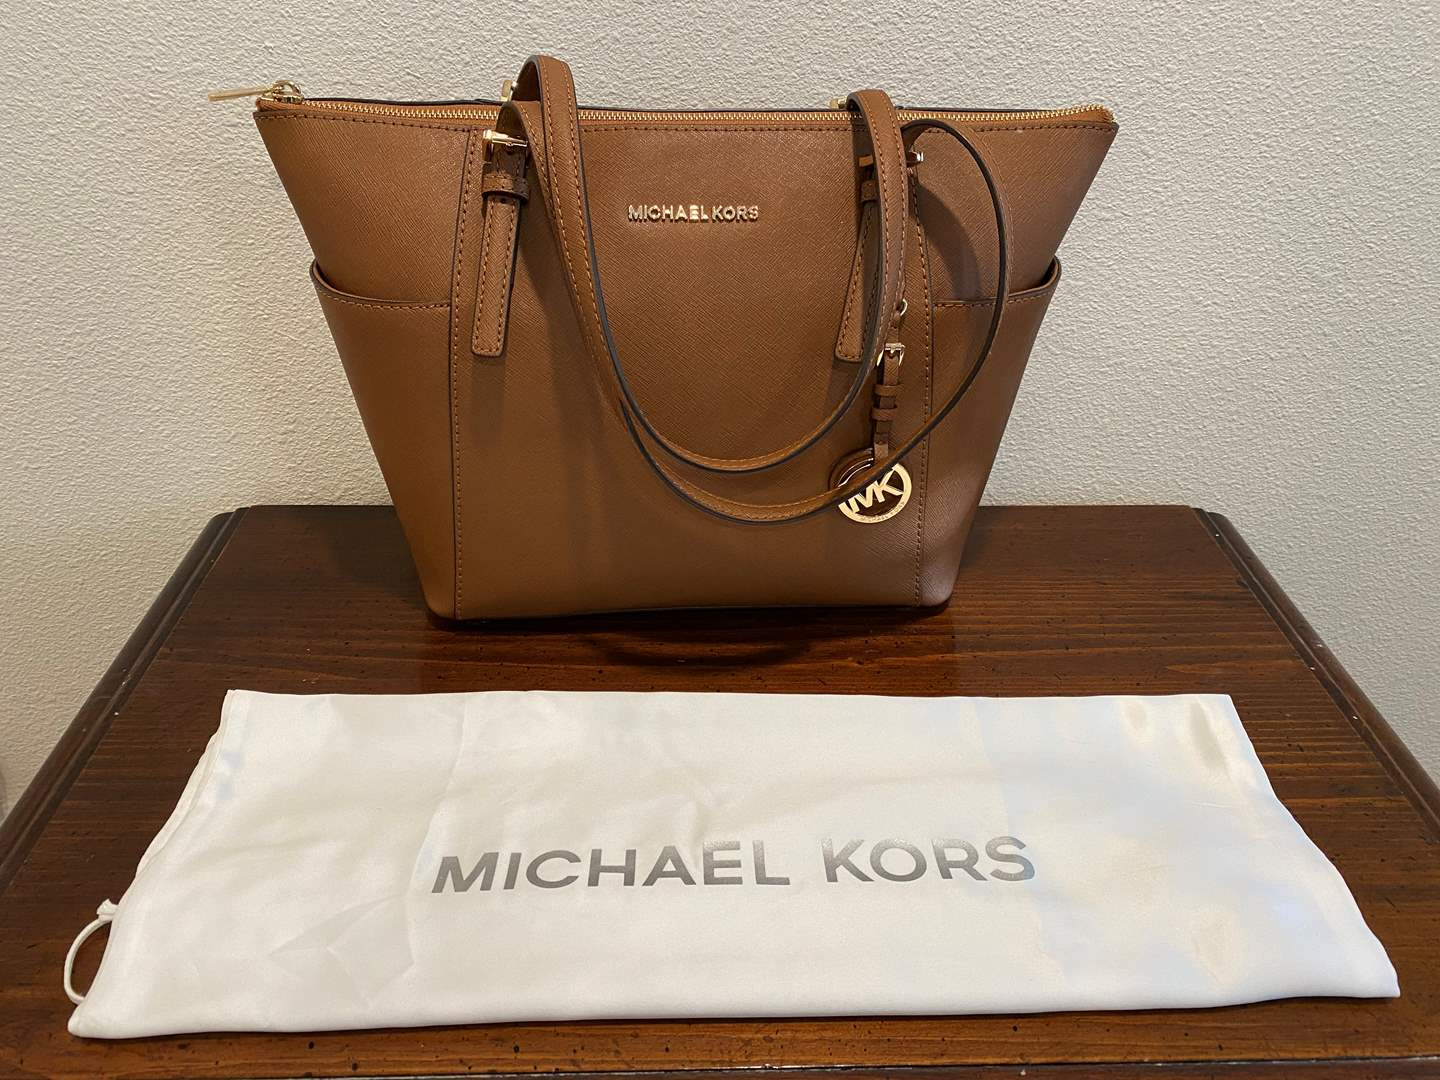 Lot # 256 - New Michael Kors Purse w/Dust Cover (main image)